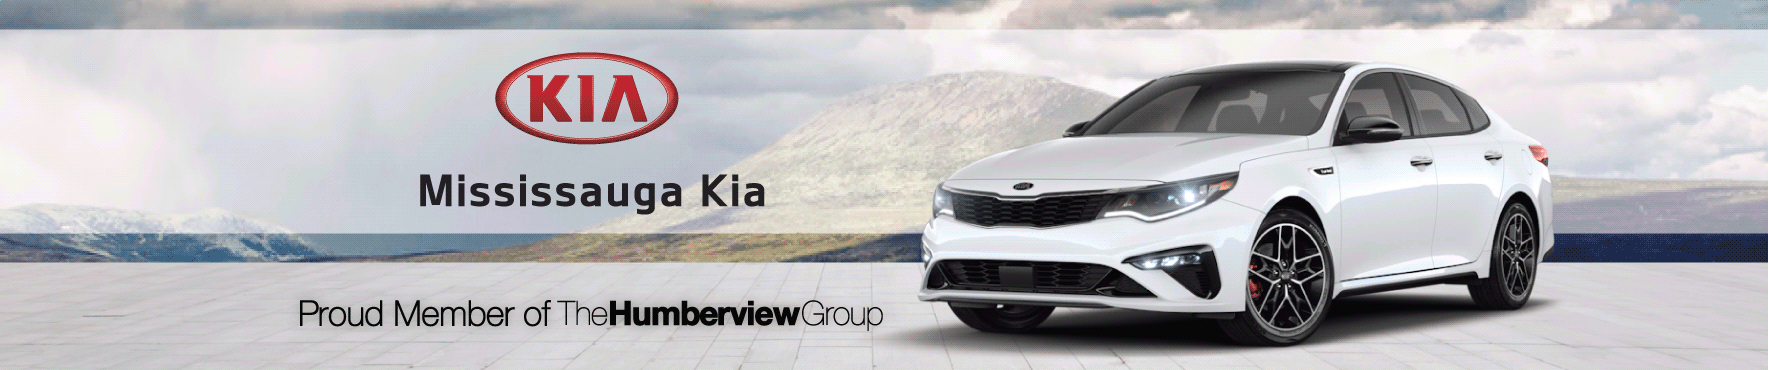 Kia-Dealership-Near-Oakville-Mississauga-Kia